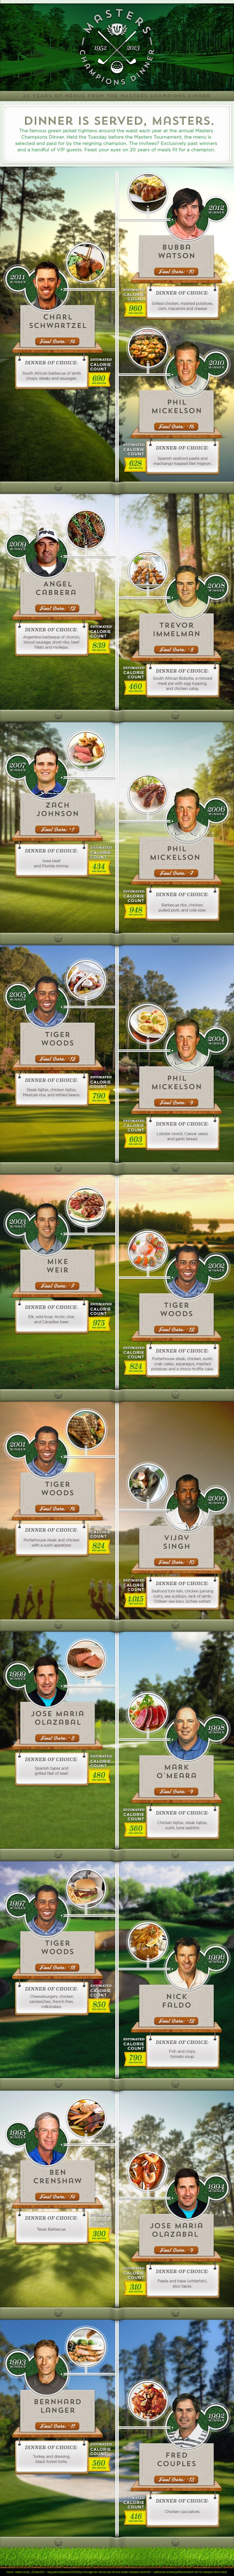 Fun golf #infographic: What the Masters pick for their celebratory dinner